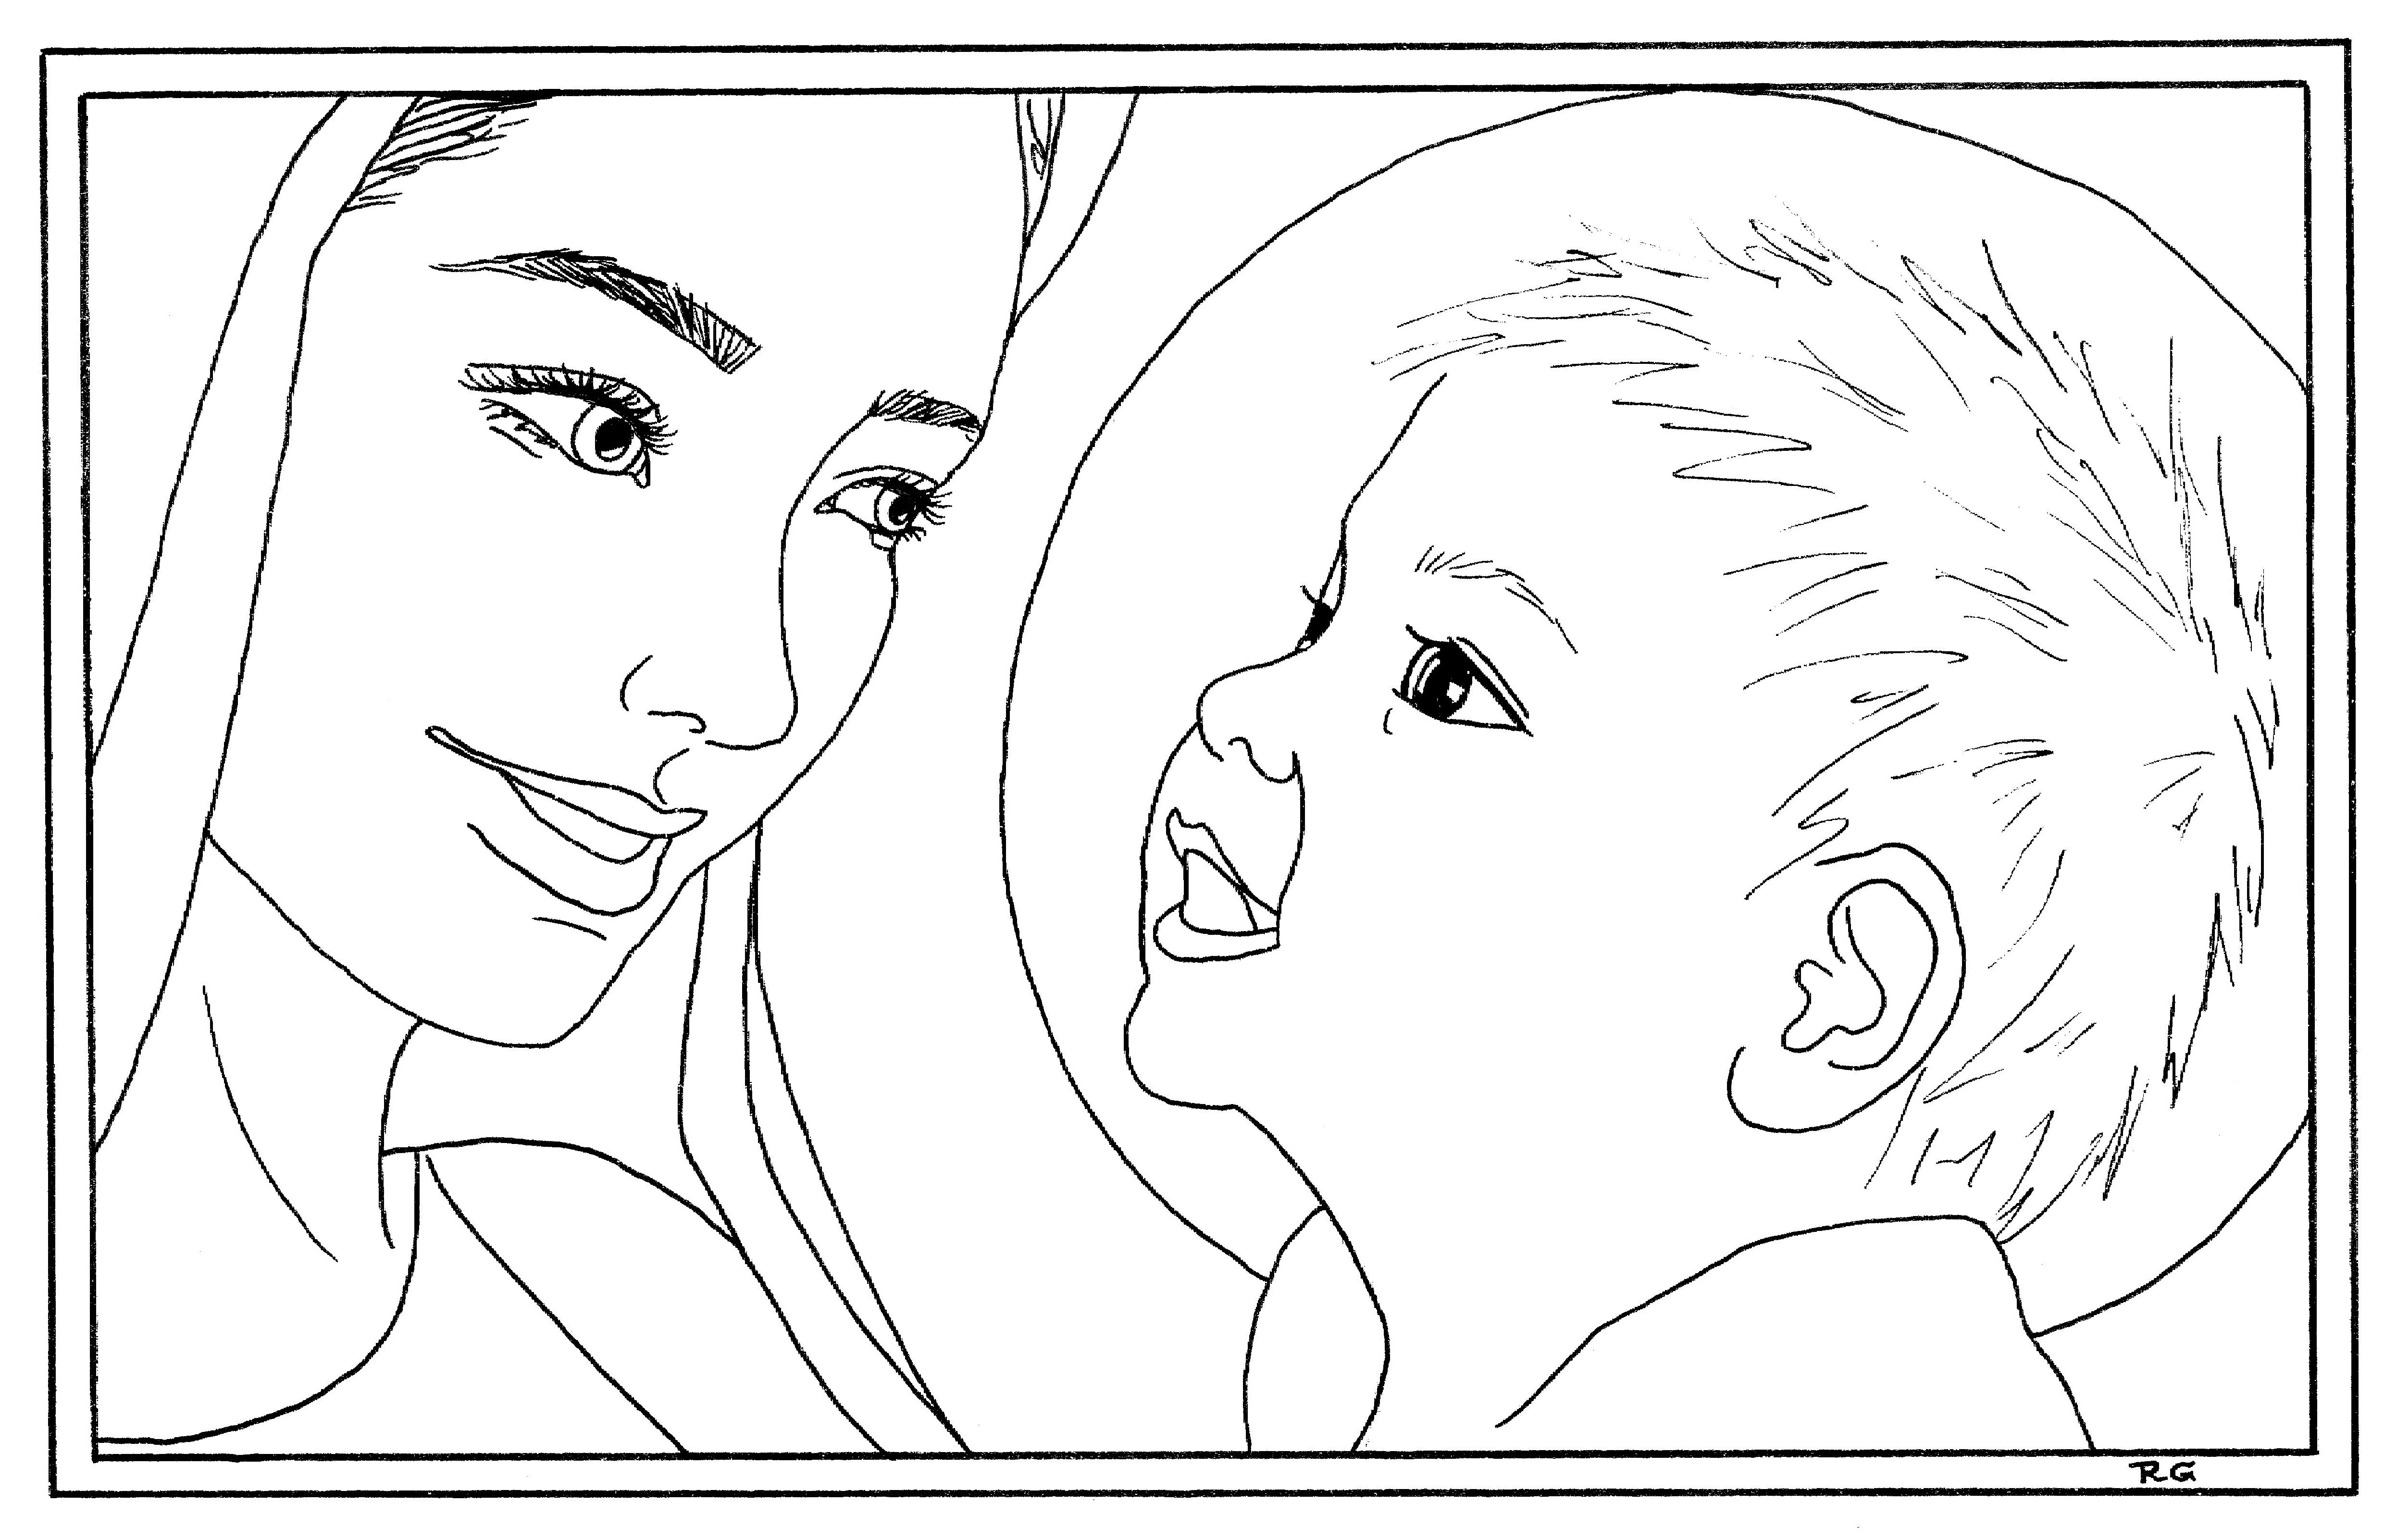 mary coloring page - coloring pages delphina rose